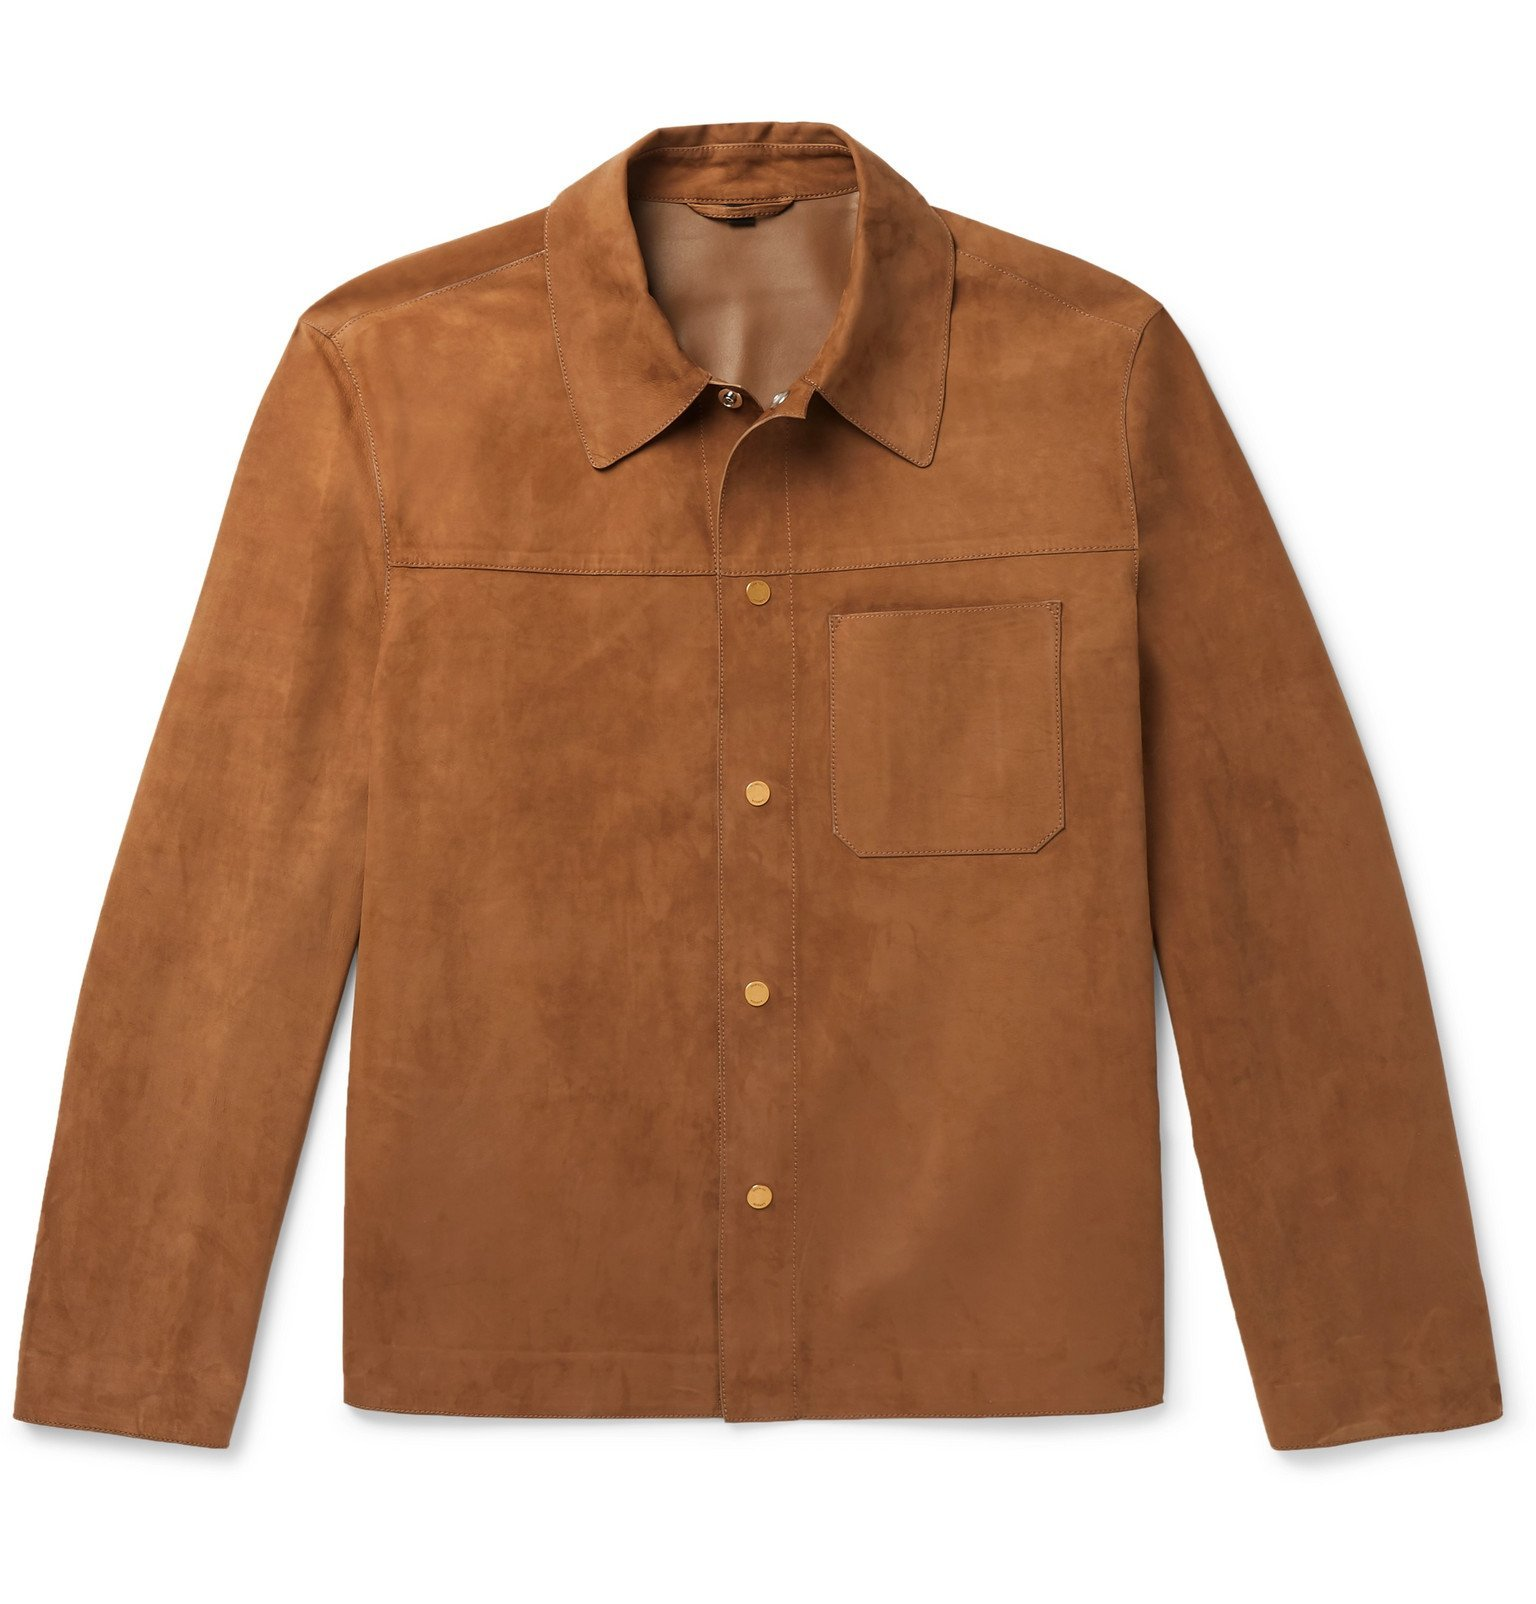 Dunhill - Suede Overshirt - Brown